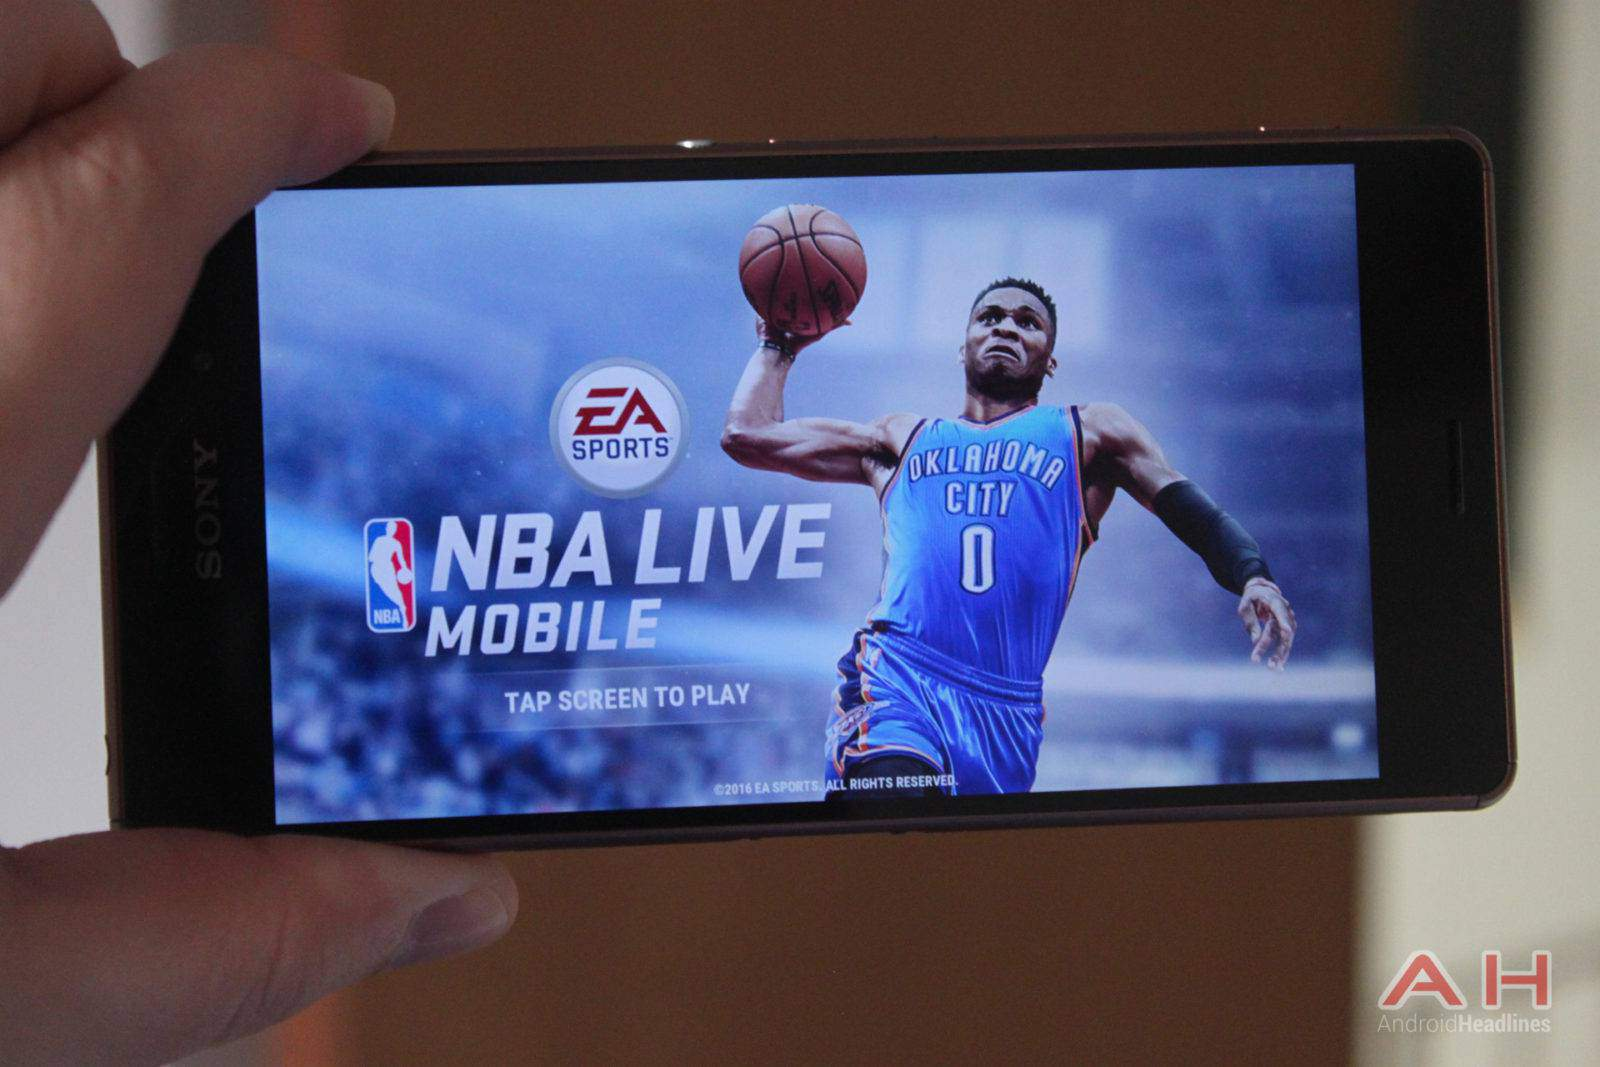 EA Launches NBA Live Mobile Worldwide With Latest Update ...